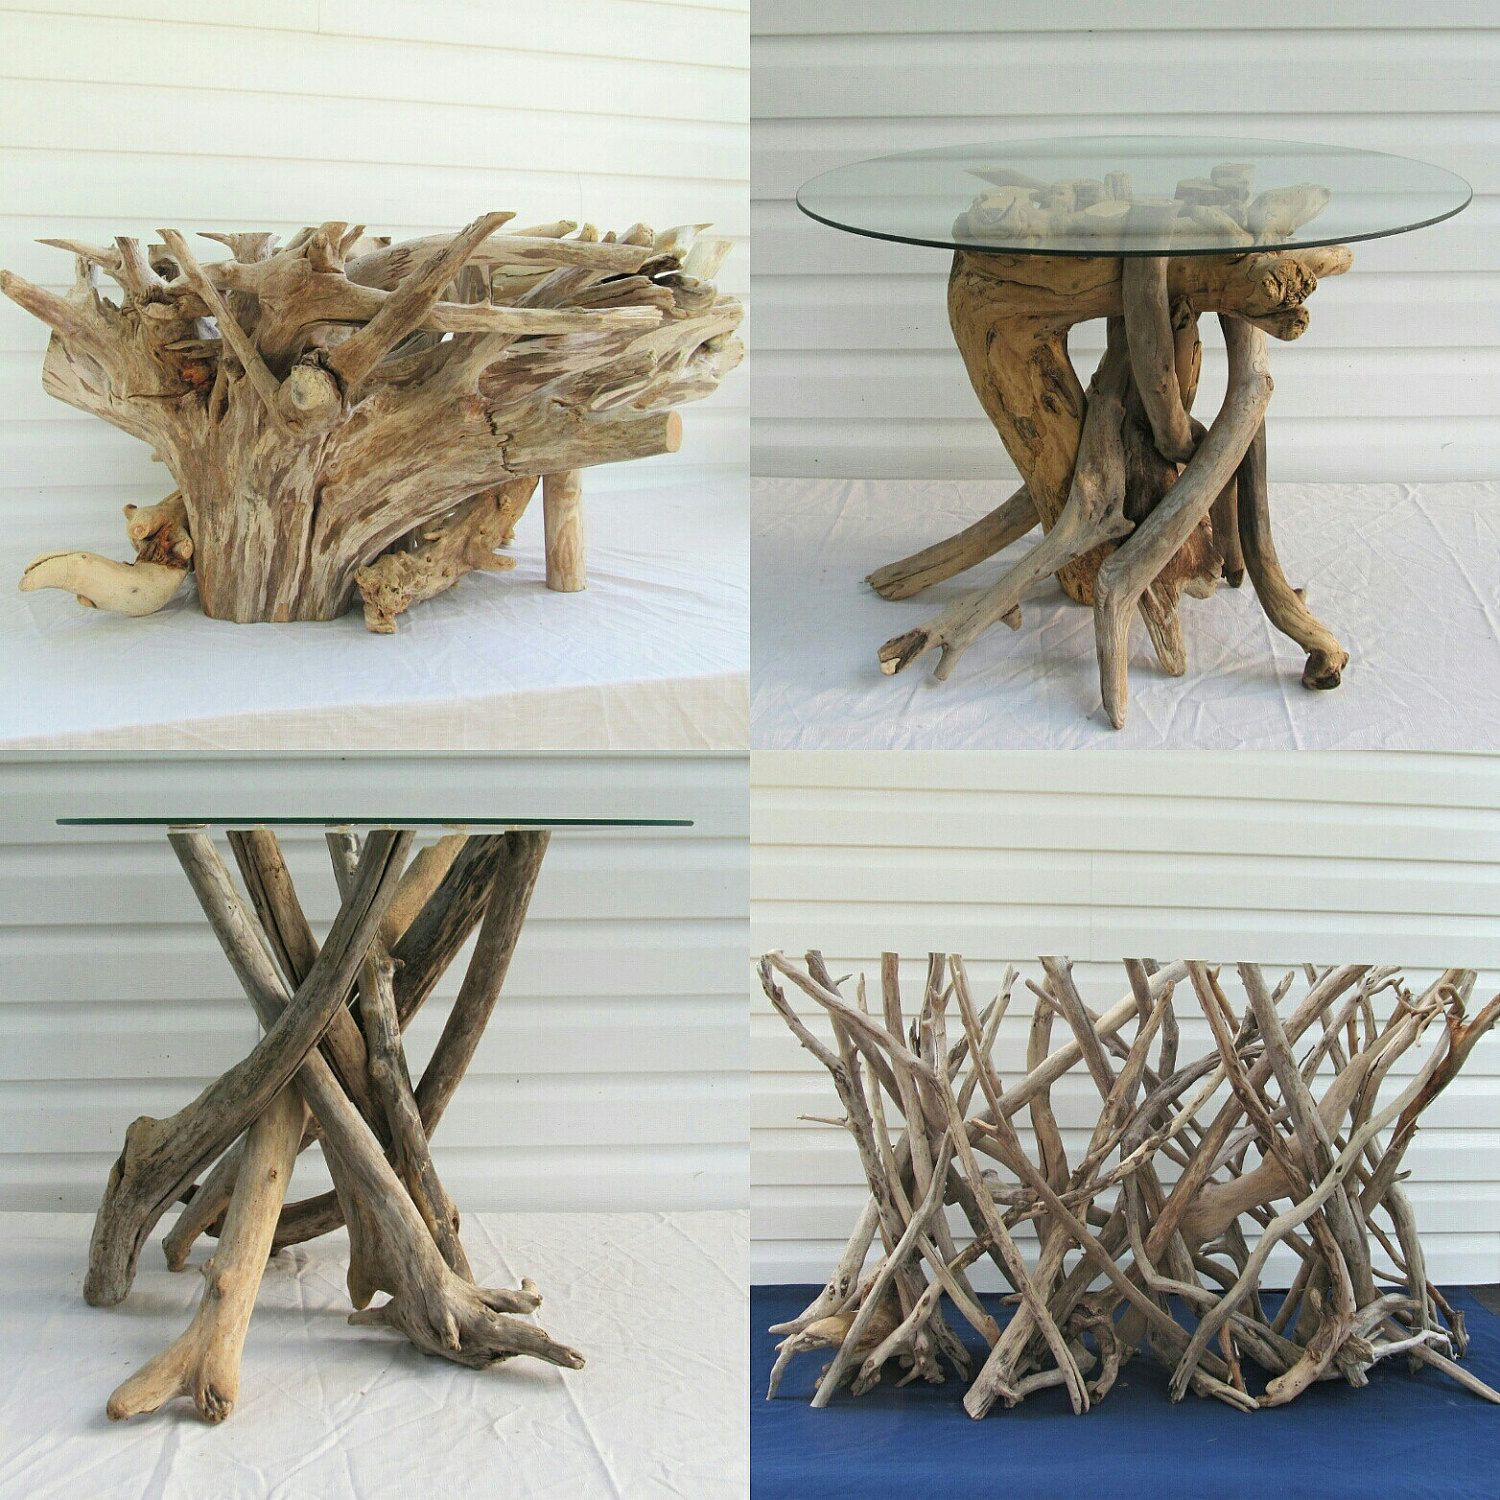 Rustic Beach Coffee Table Driftwood Coffee Table Base Driftwood Table Driftwood